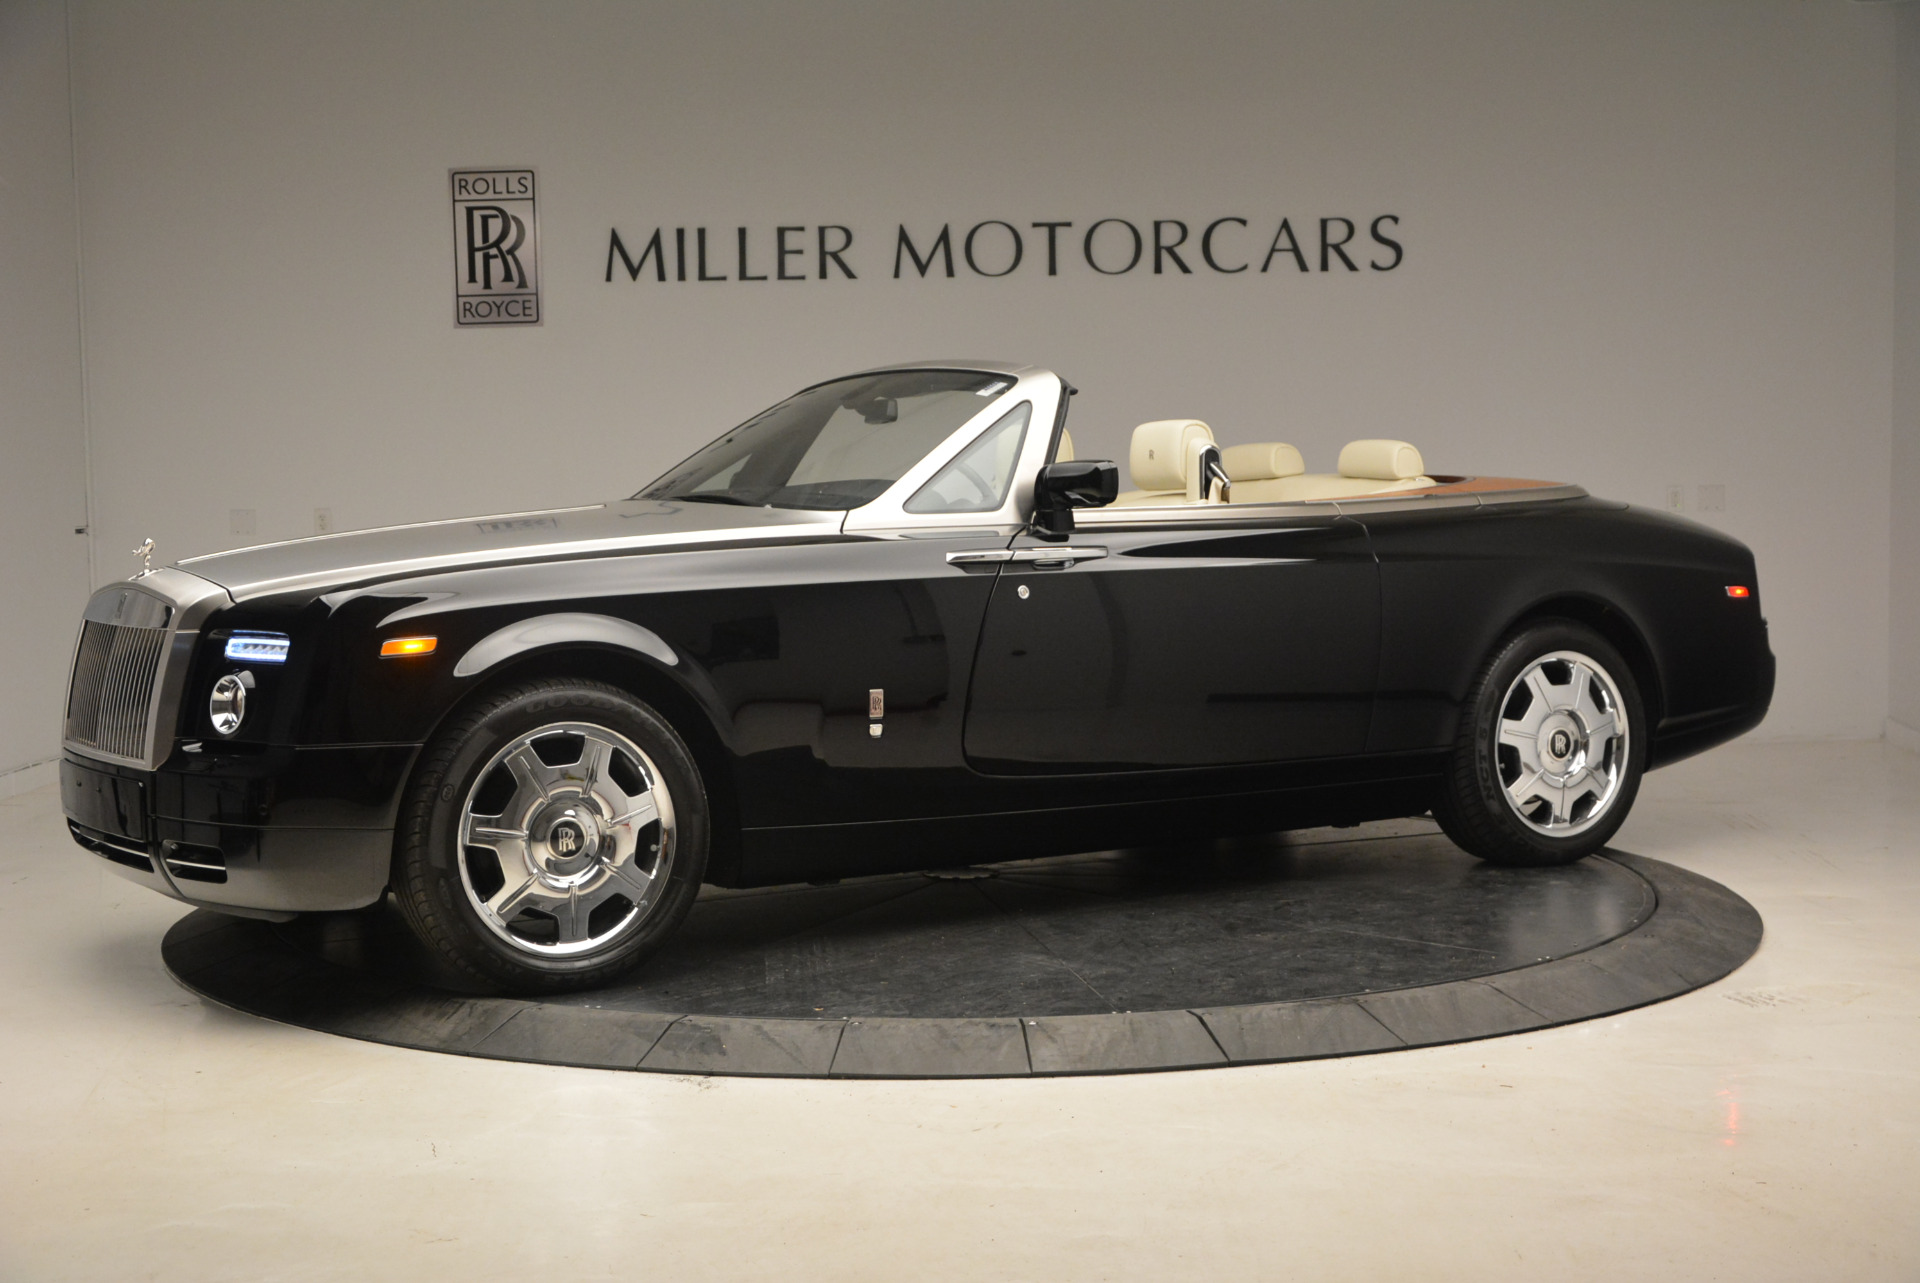 Used 2009 Rolls-Royce Phantom Drophead Coupe  For Sale In Westport, CT 1792_p2